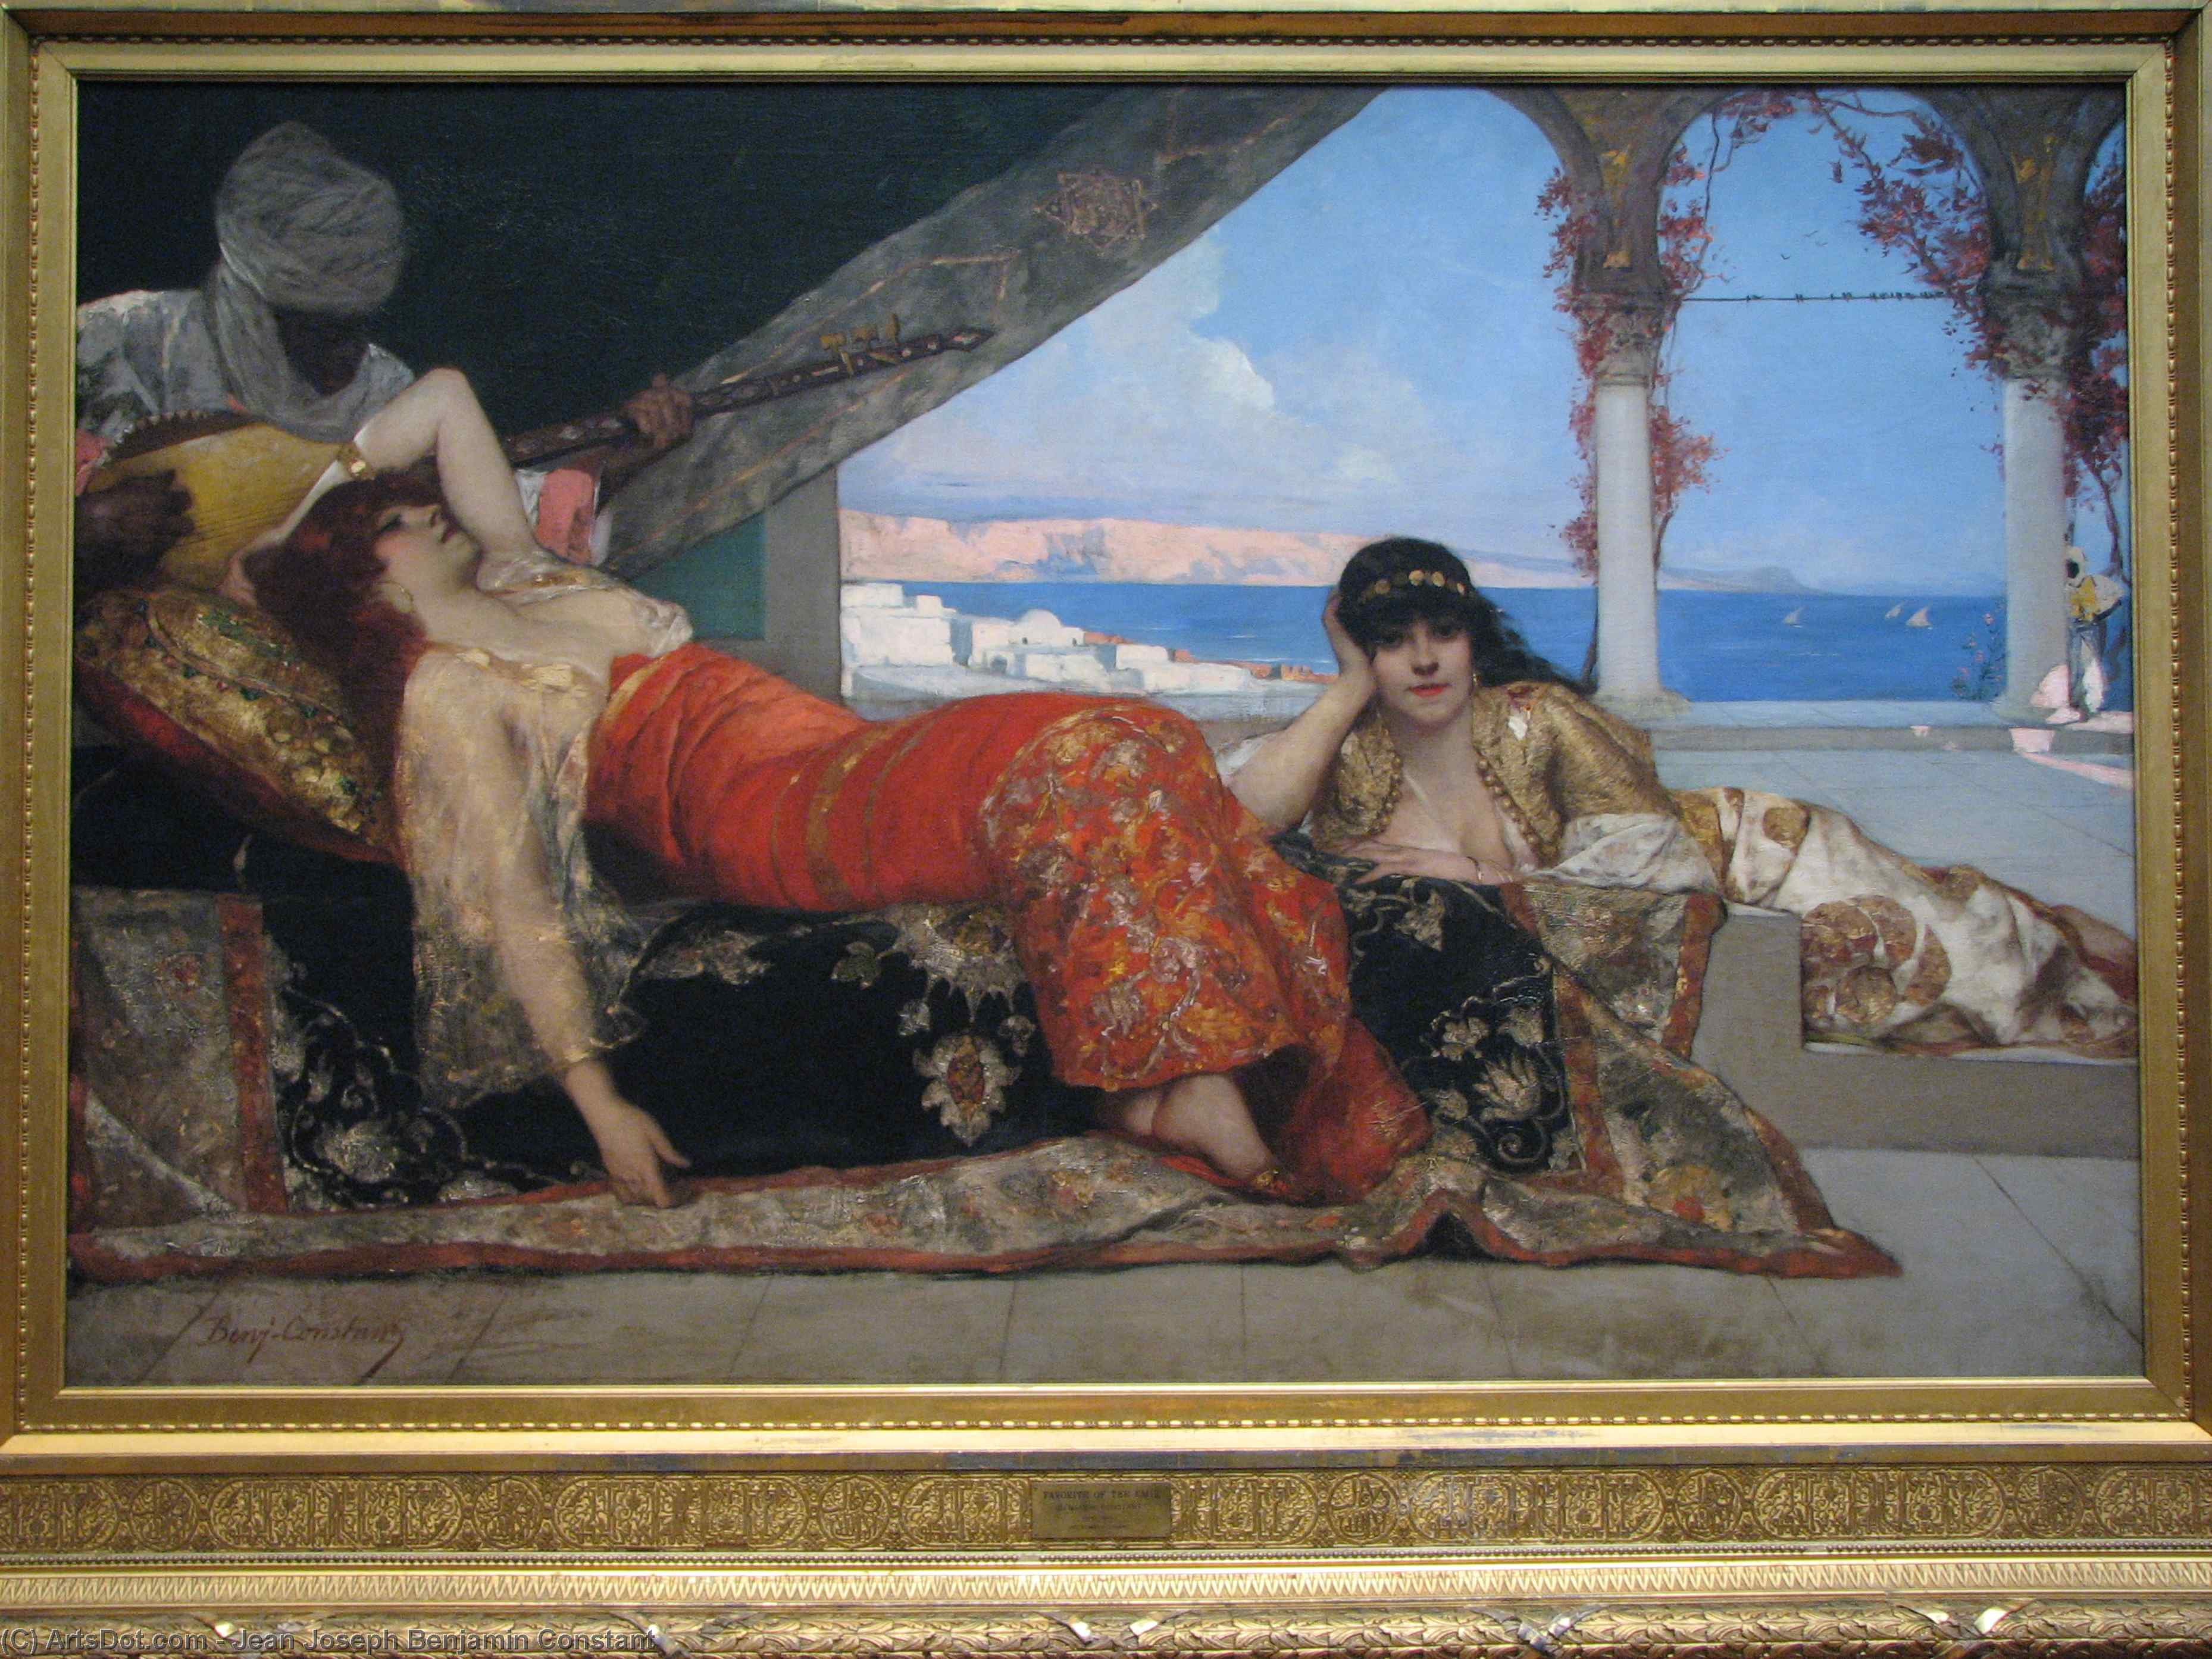 Favorite of the Emir by Jean-Joseph Constant (Benjamin-Constant) (1845-1902, France) | Paintings Reproductions Jean-Joseph Constant (Benjamin-Constant) | ArtsDot.com